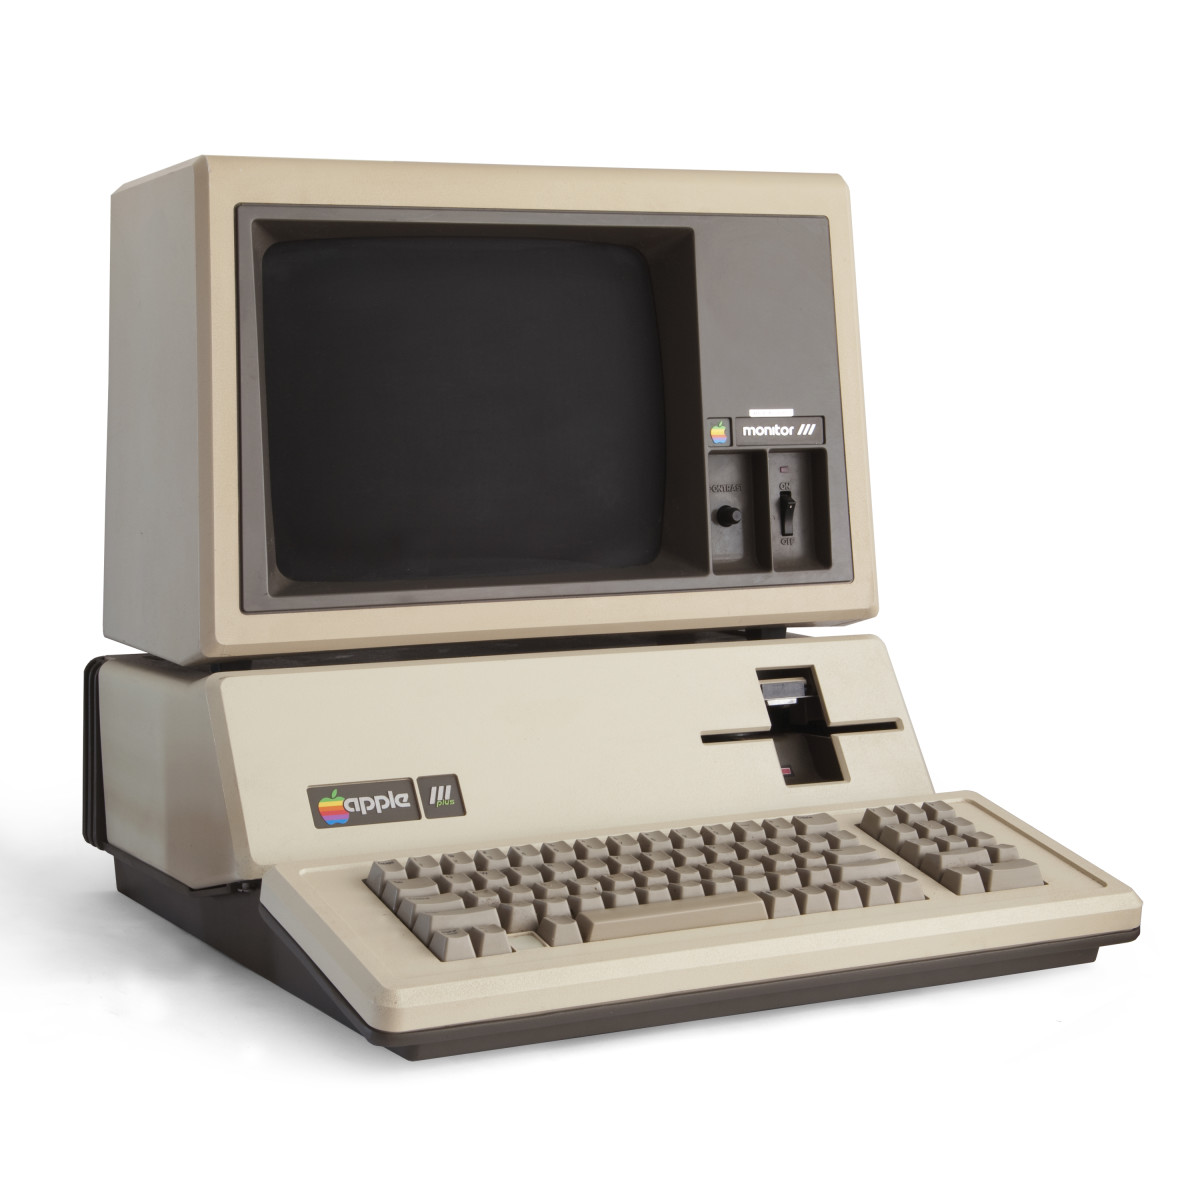 Less than 100,000 Apple IIIs were ever sold.